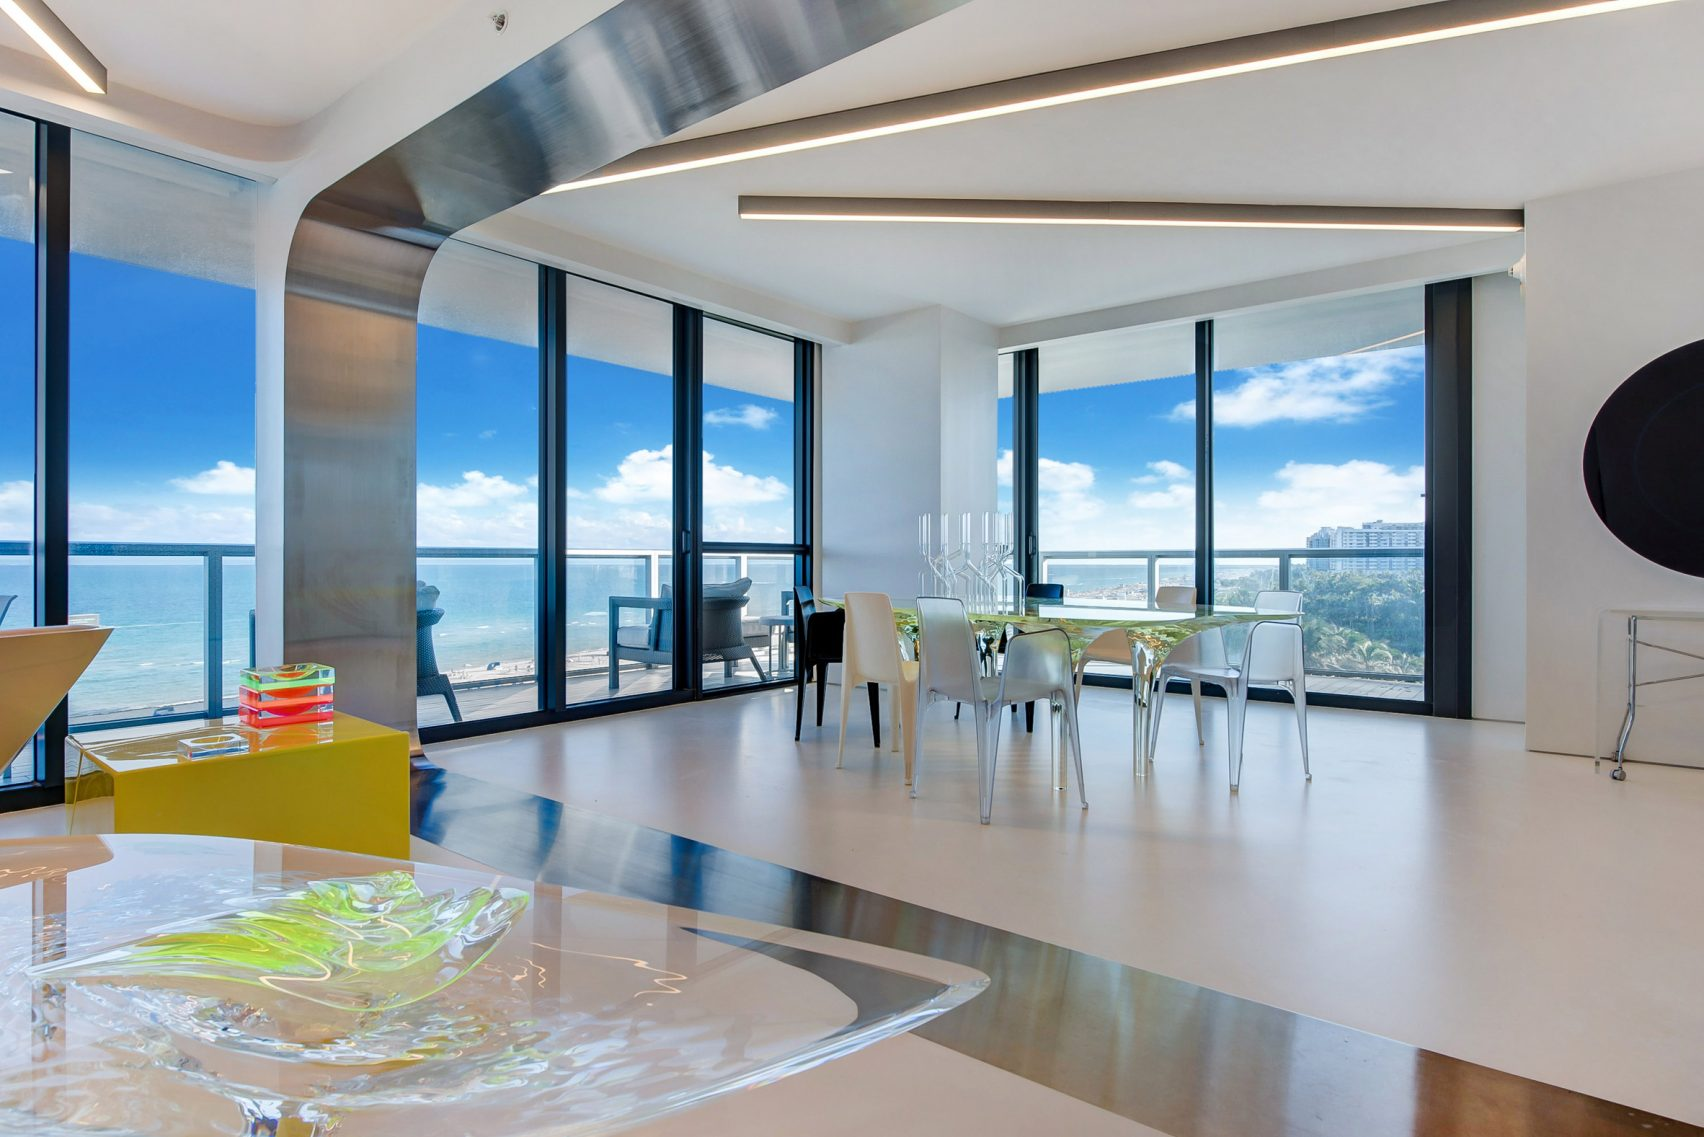 design, luxury, penthouse, american, miami, modern, zaha hadi, beach, architect, villa, billionaire, house, usa